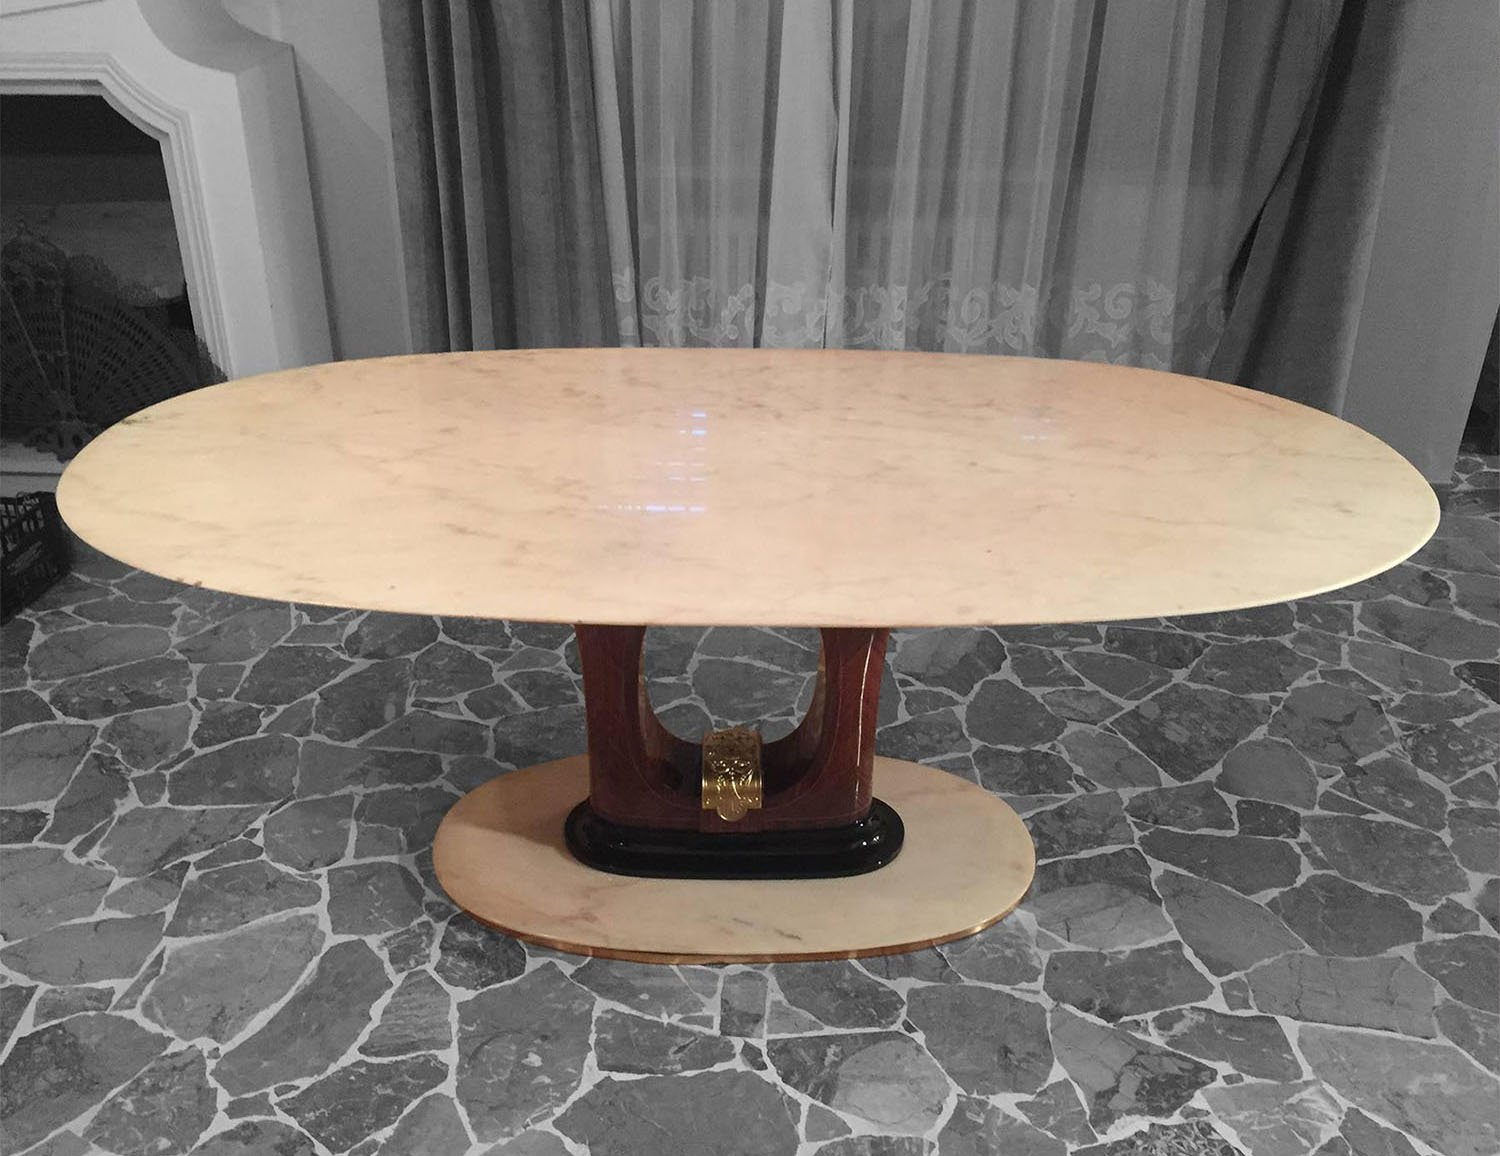 MidCentury Italian Marble Dining Table S For Sale At Pamono - Mid century marble dining table